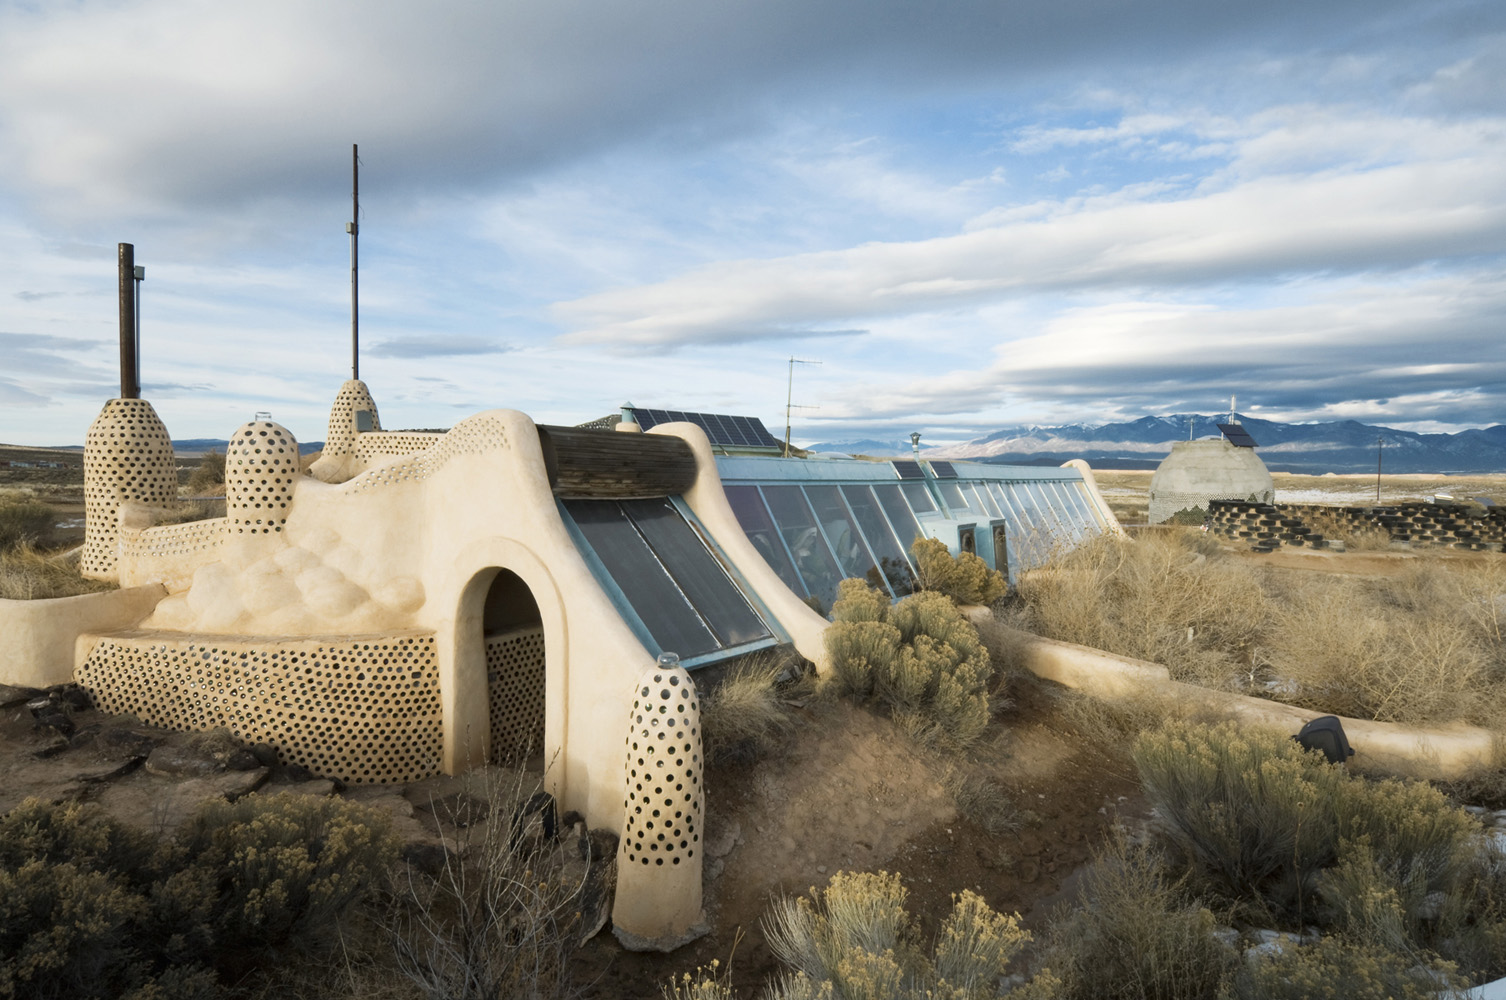 Taos, New Mexico, USA.Earthship house. A New Mexico style of house made out of recycled material; car tires, cans and bottles. Earthships are self-sustainable with water harvesting, solar and wind electric power and Solar/Thermal heating and cooling.